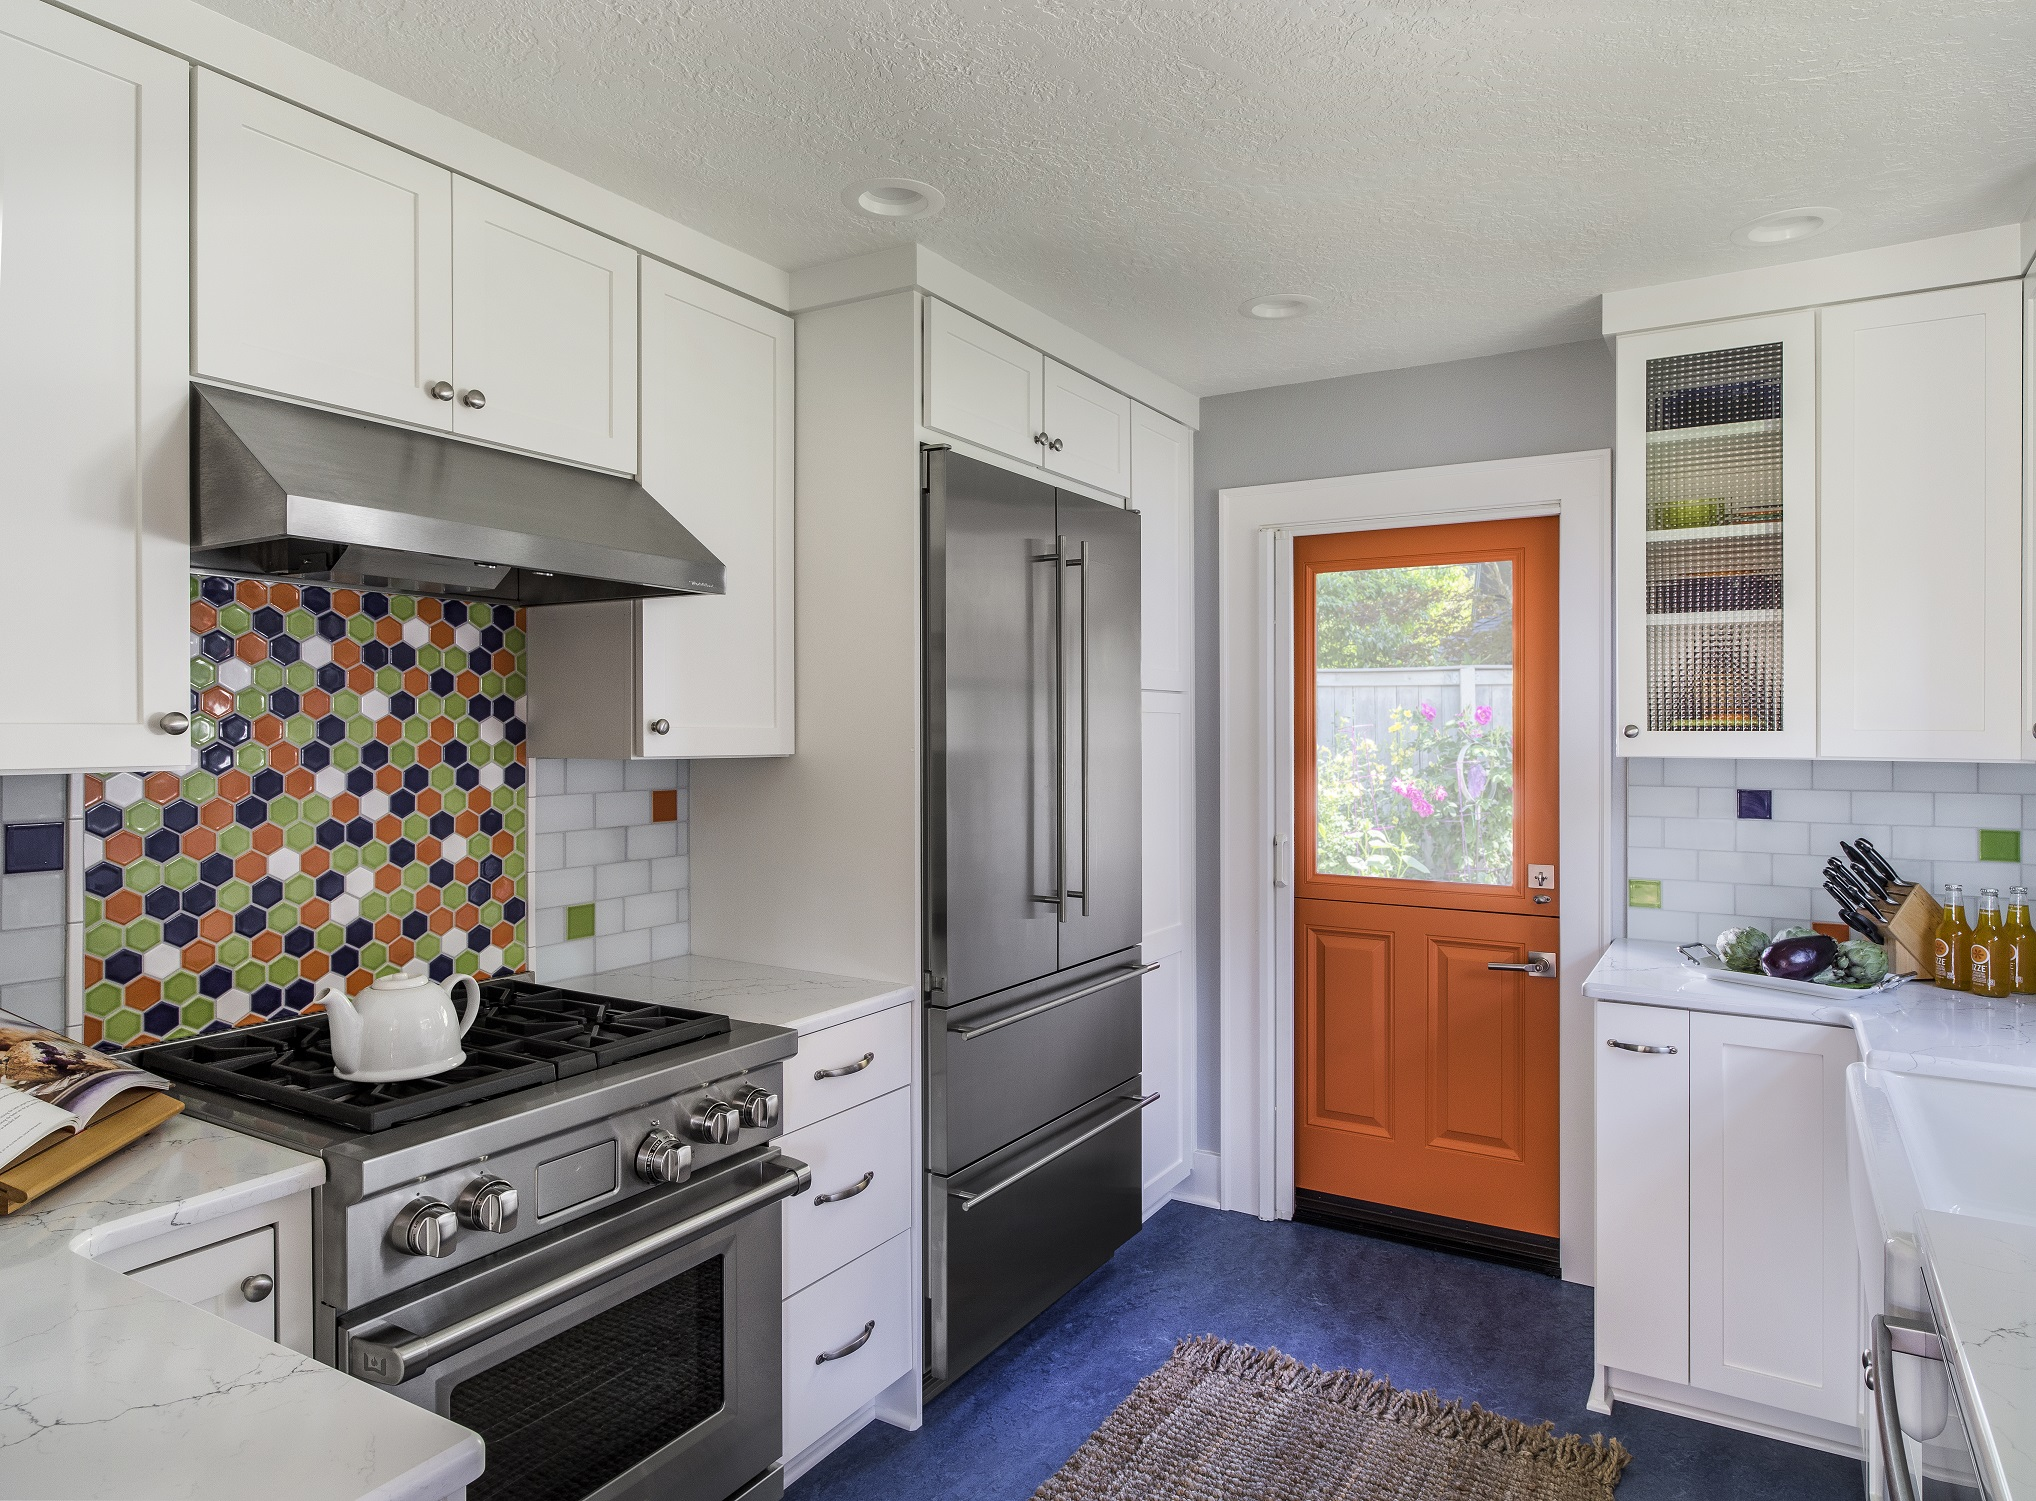 Kitchen remodel including colorful Dutch door